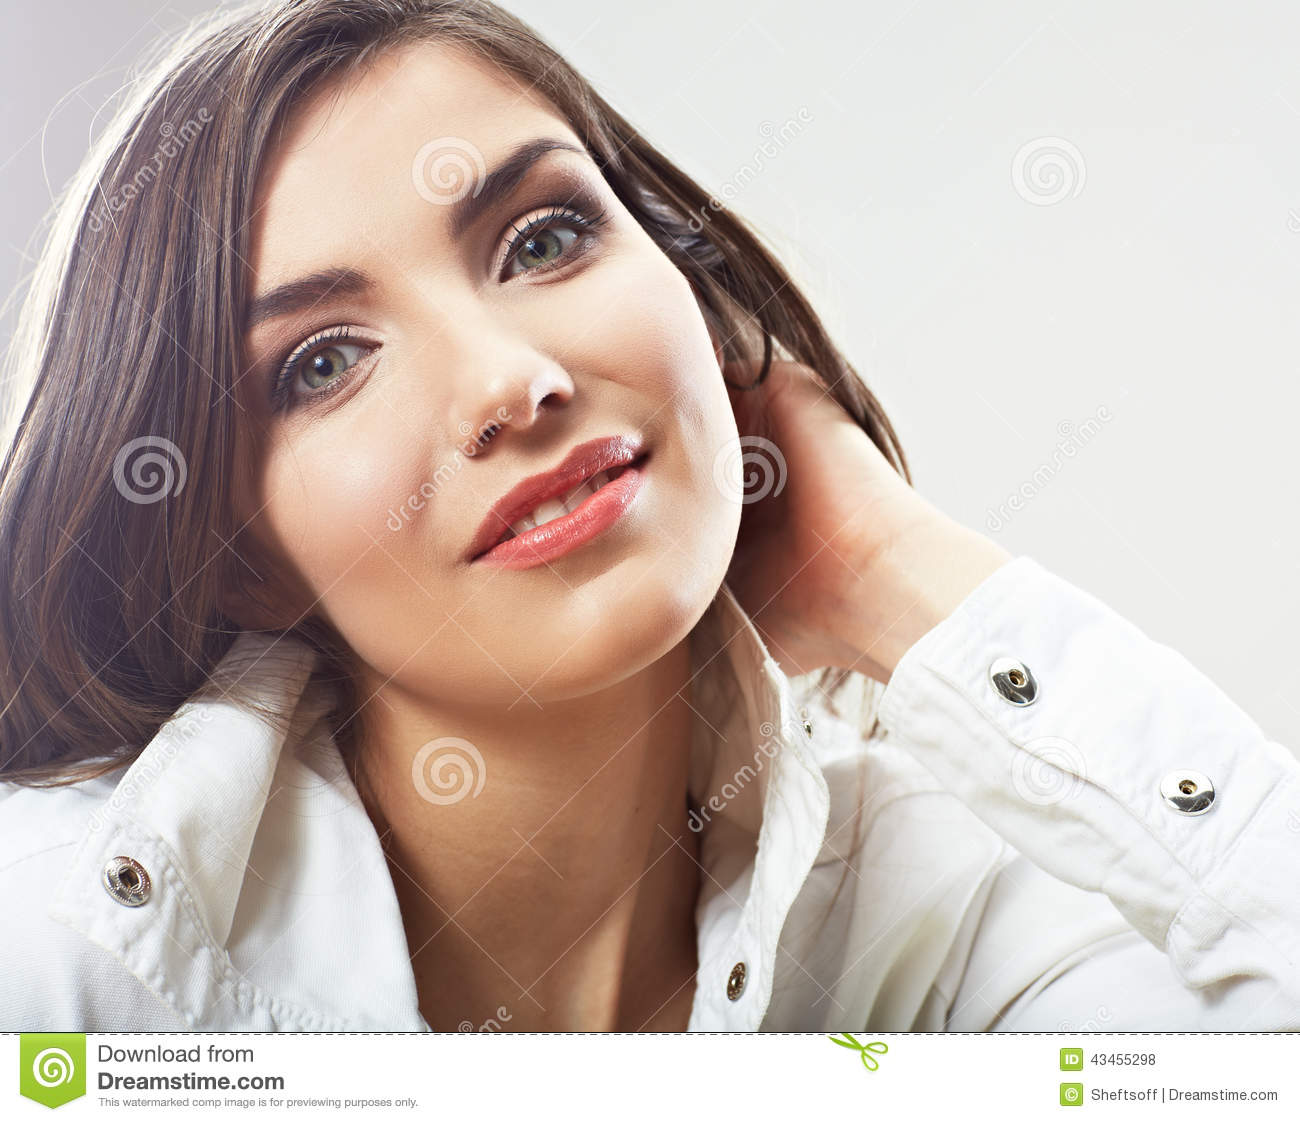 Beauty woman face close up portrait. Young female